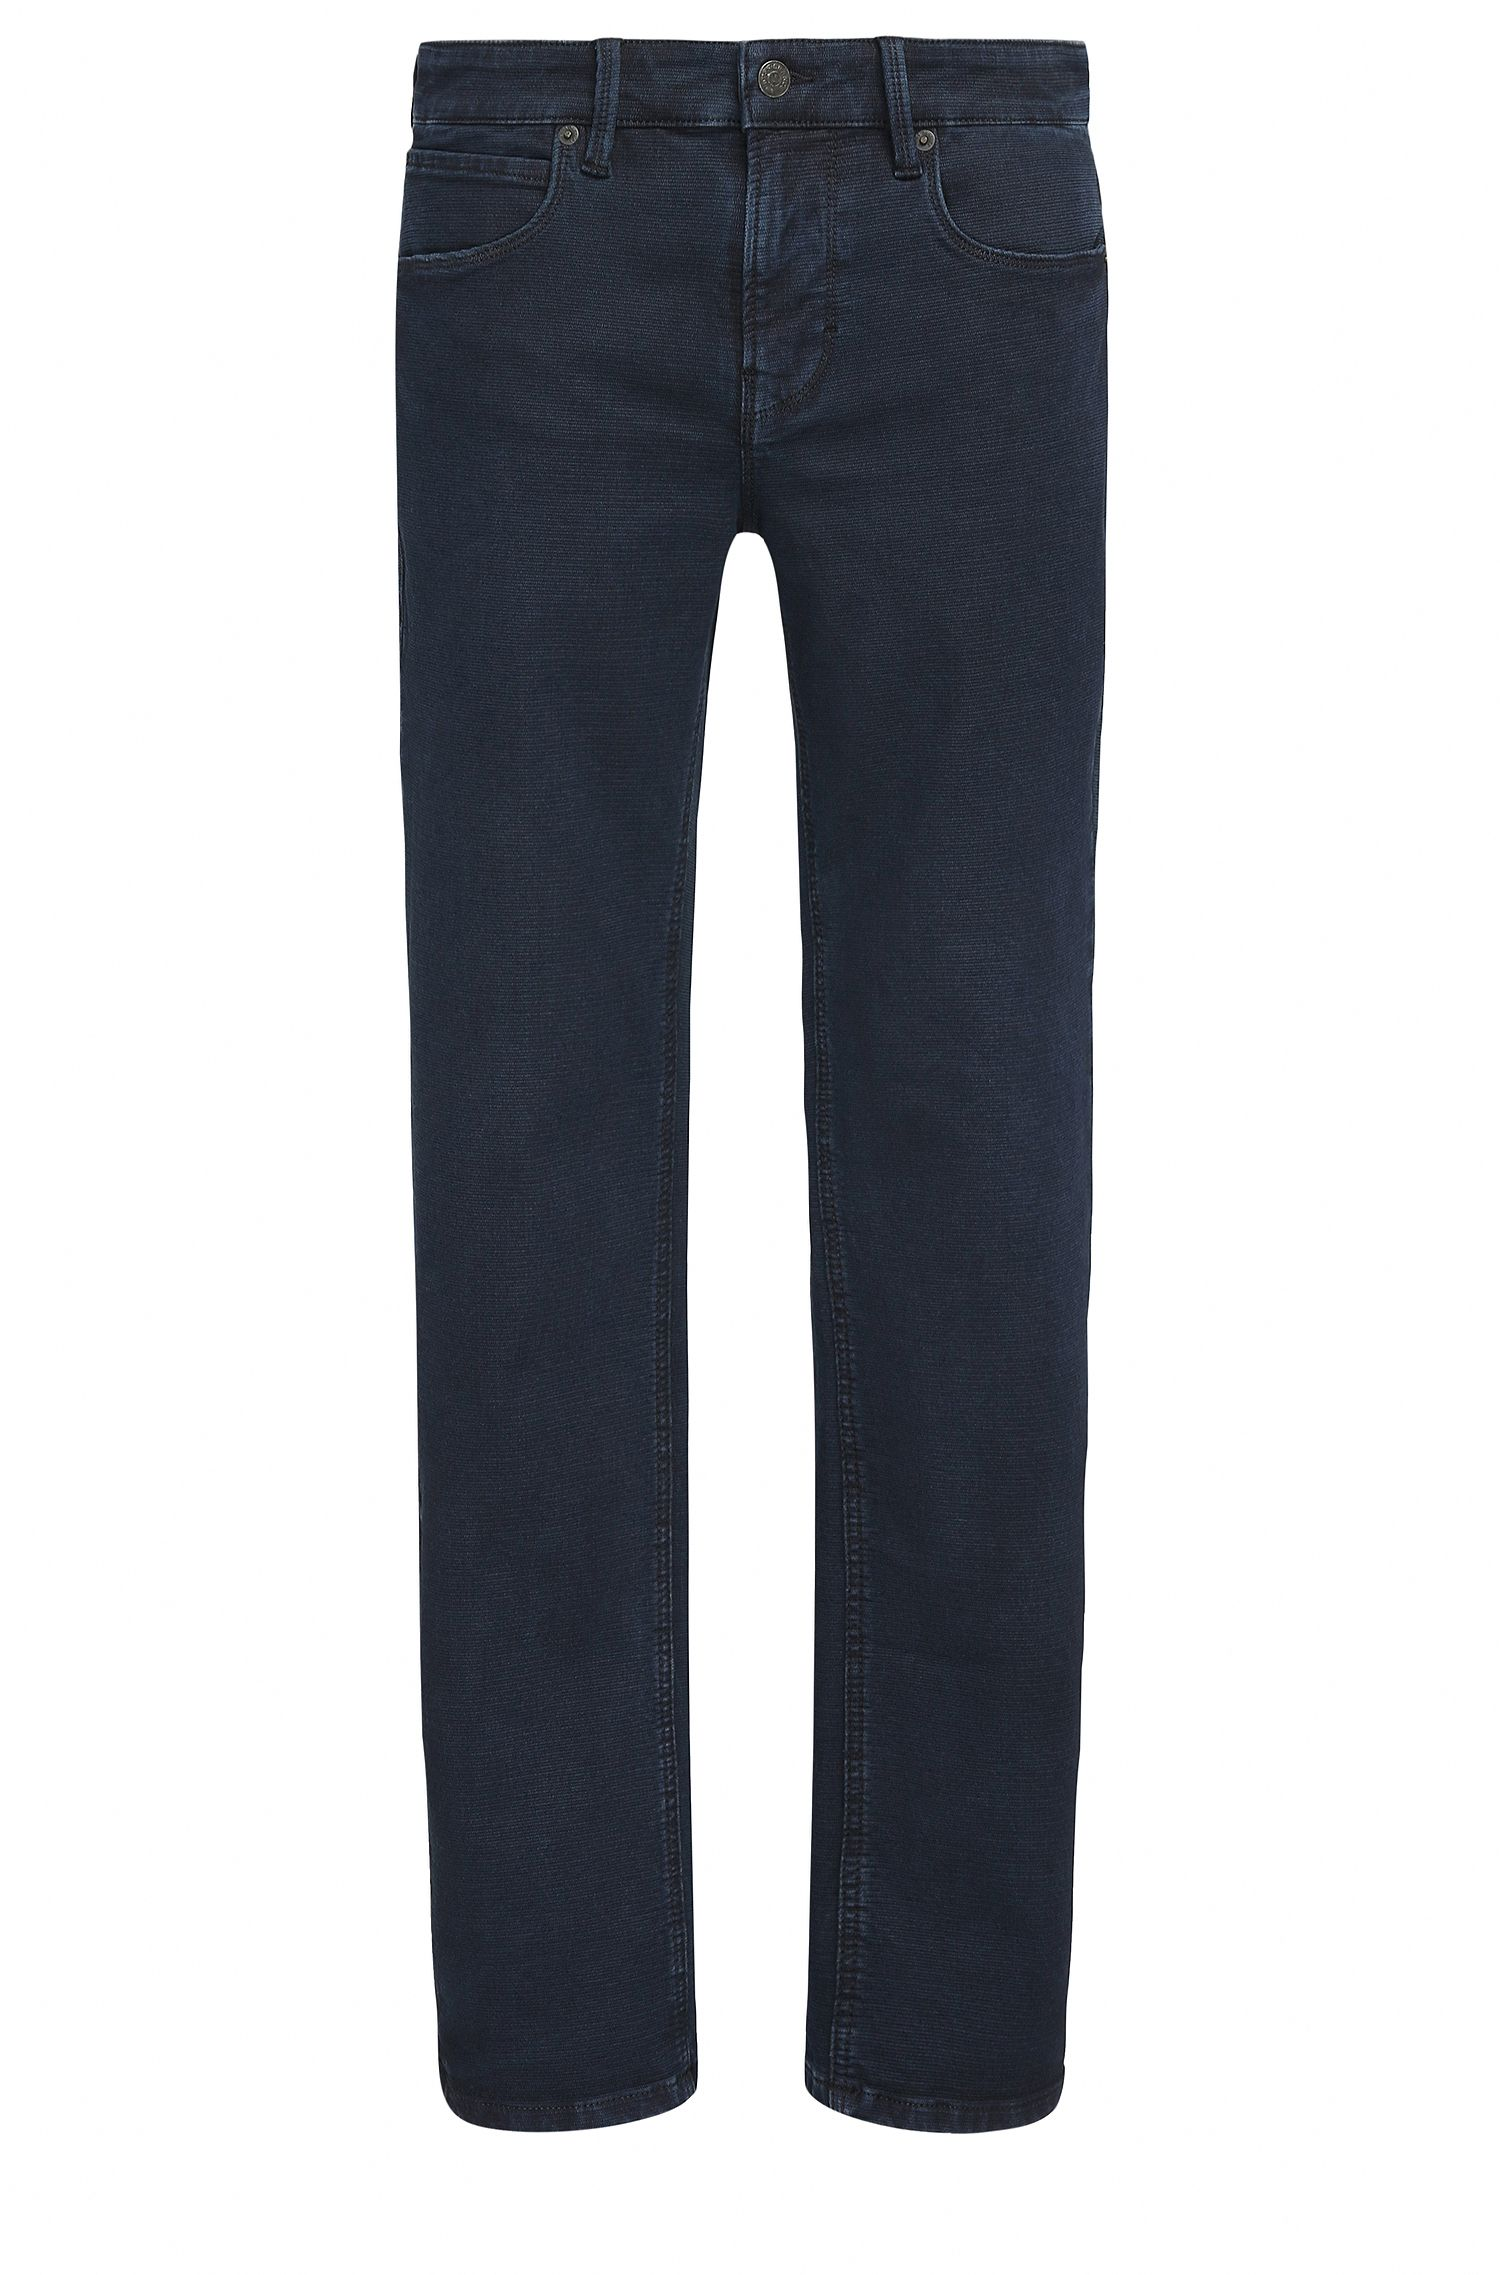 Jeans Slim Fit en denim dobby stretch